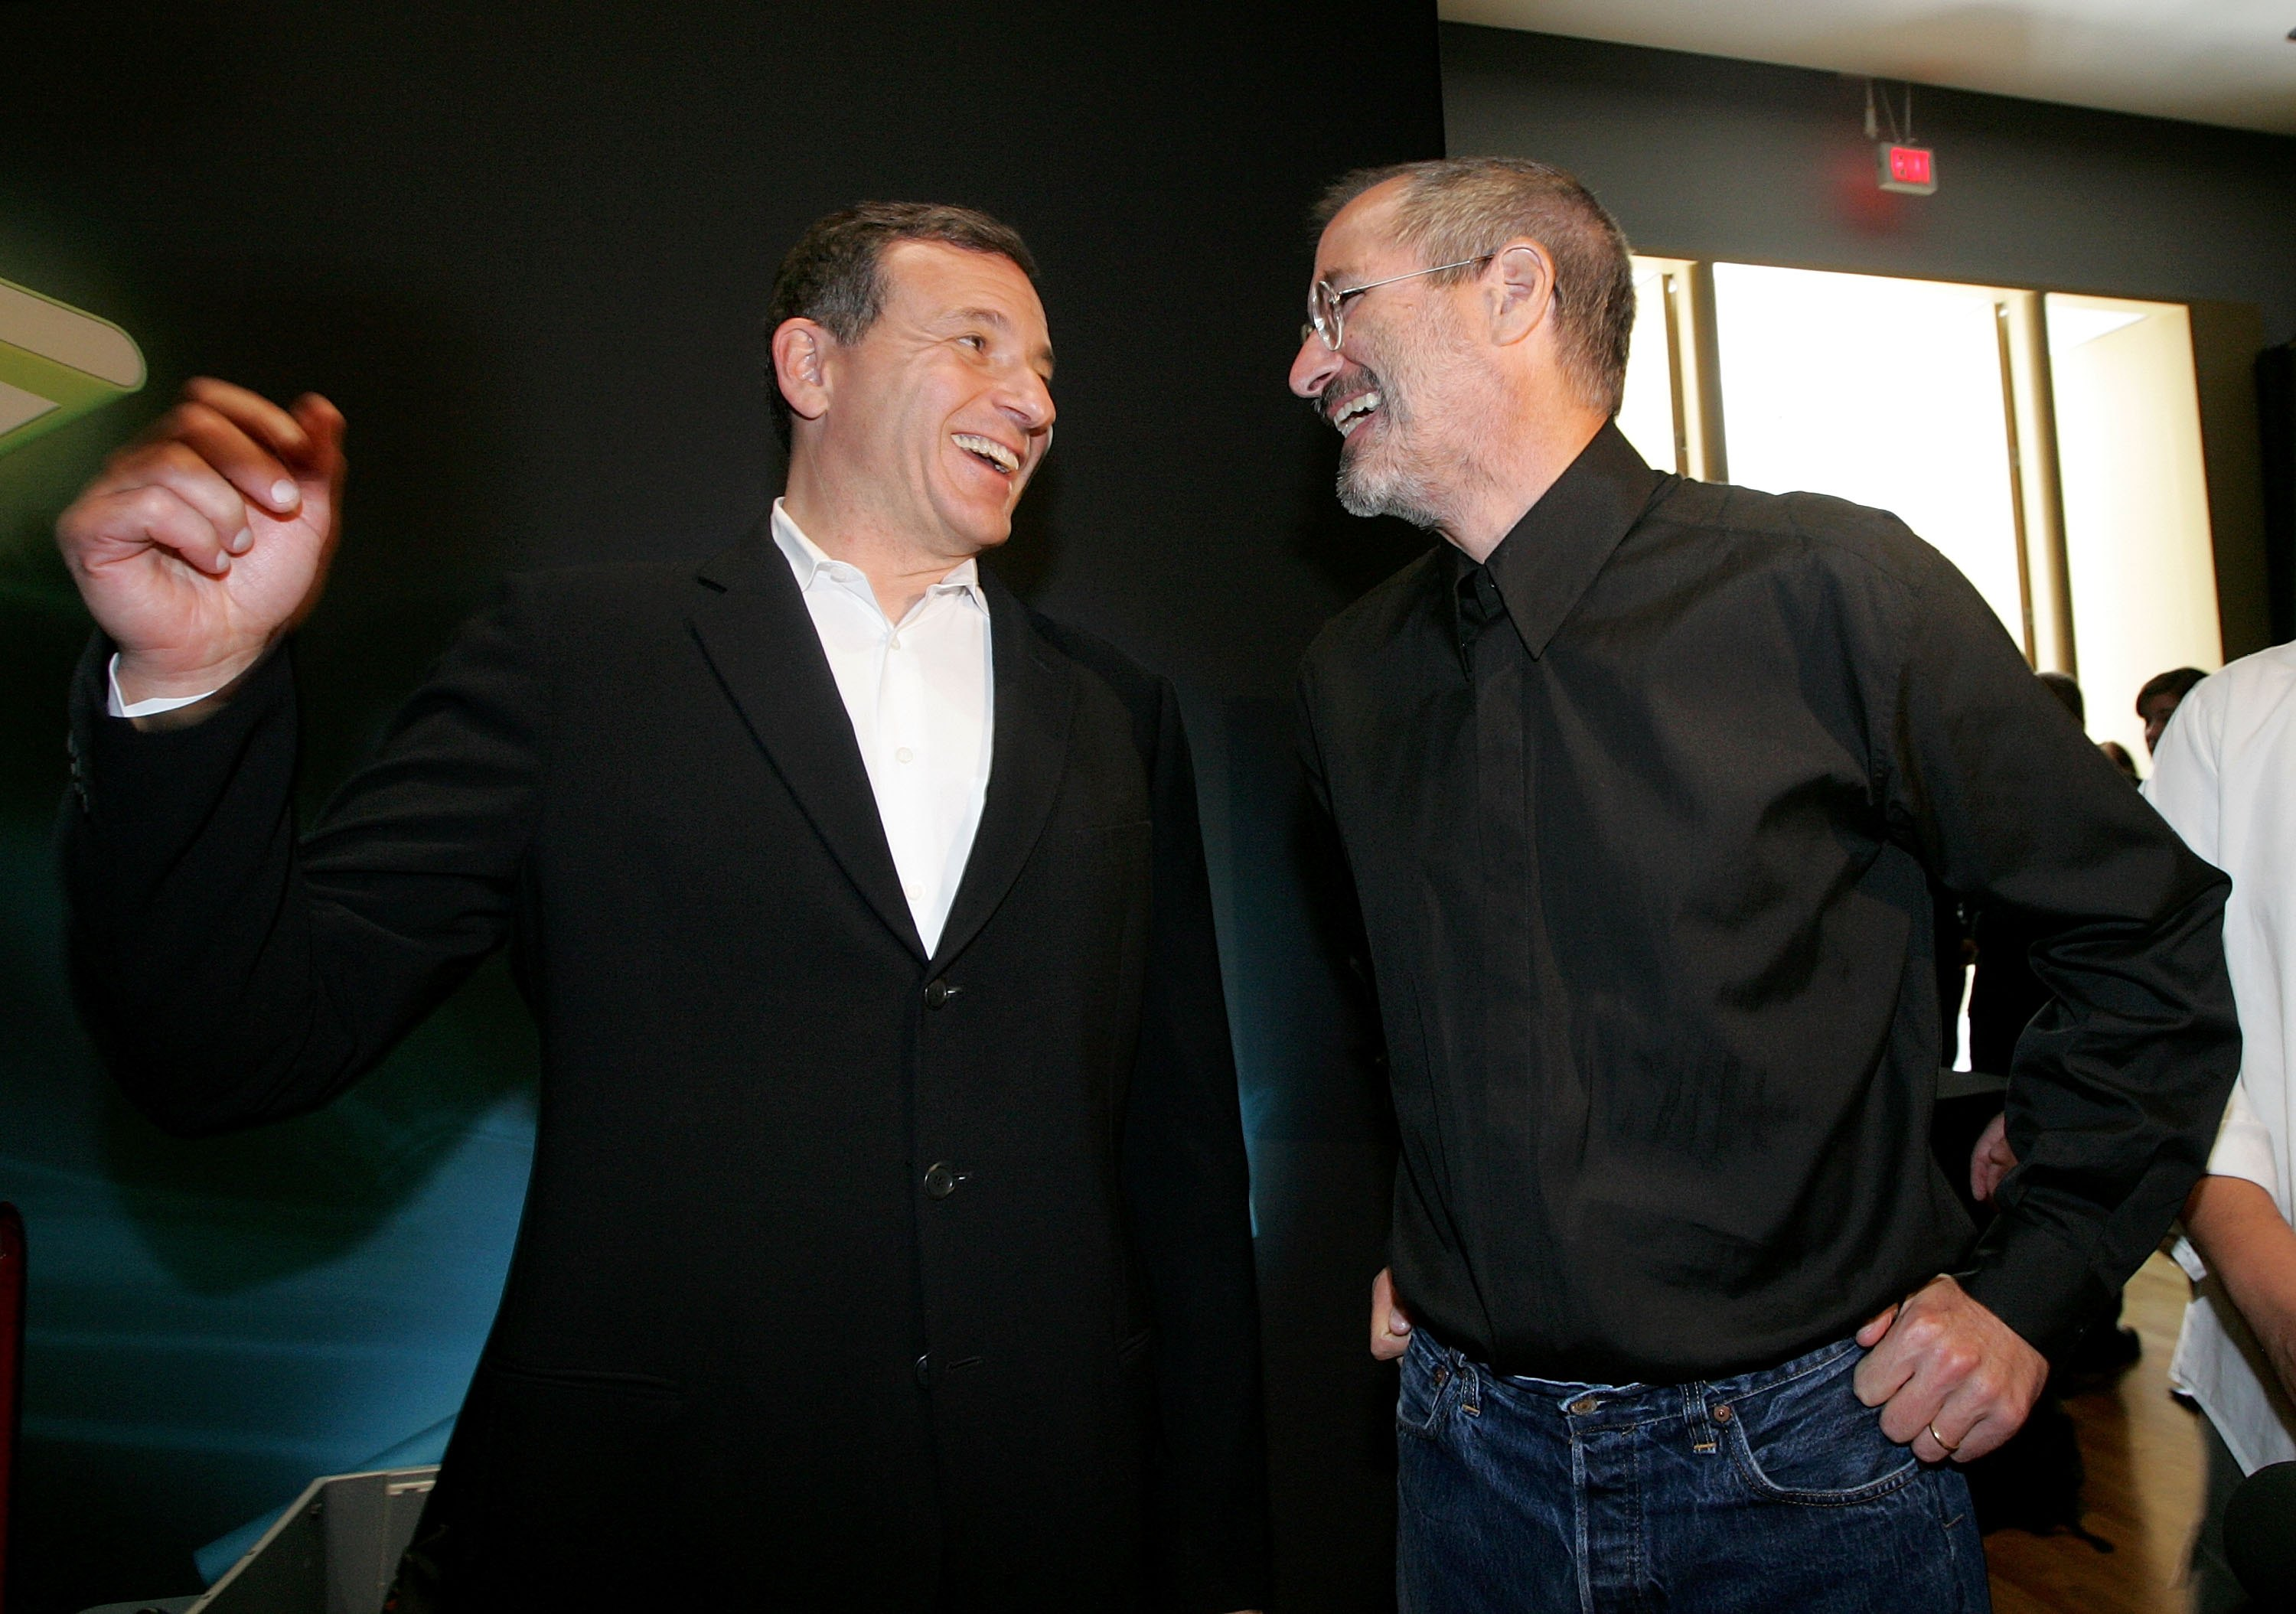 Bob Iger was more than Steve Jobs' friend: He was legacy media's most tech-savvy CEO